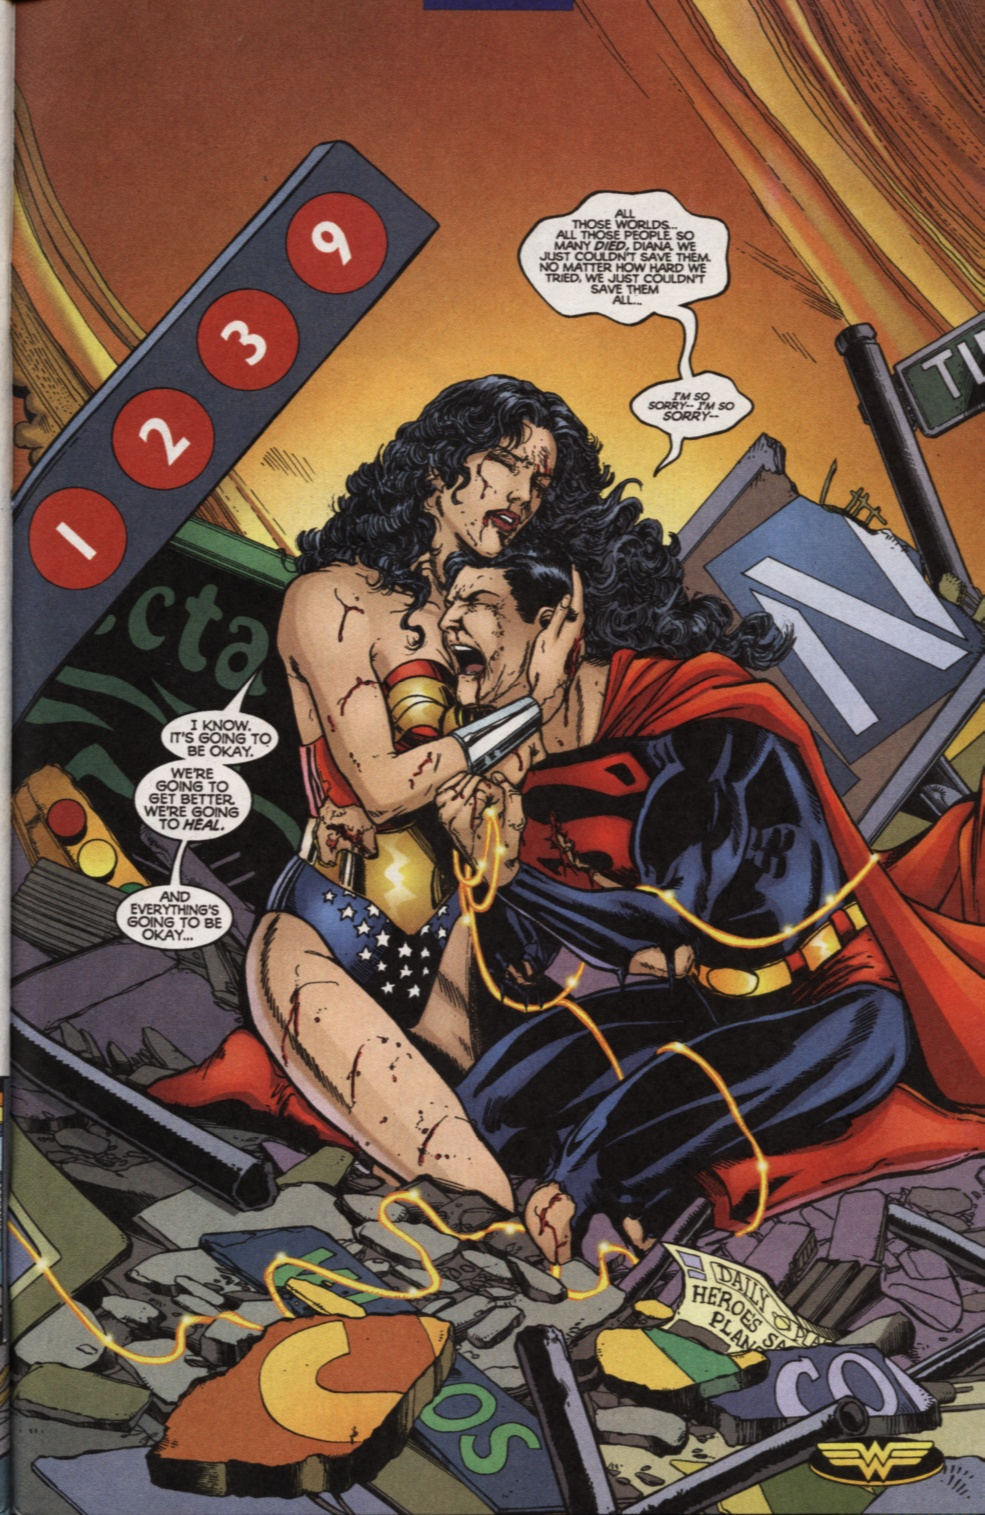 wonder woman_175_37_Csodano_Superman.jpg